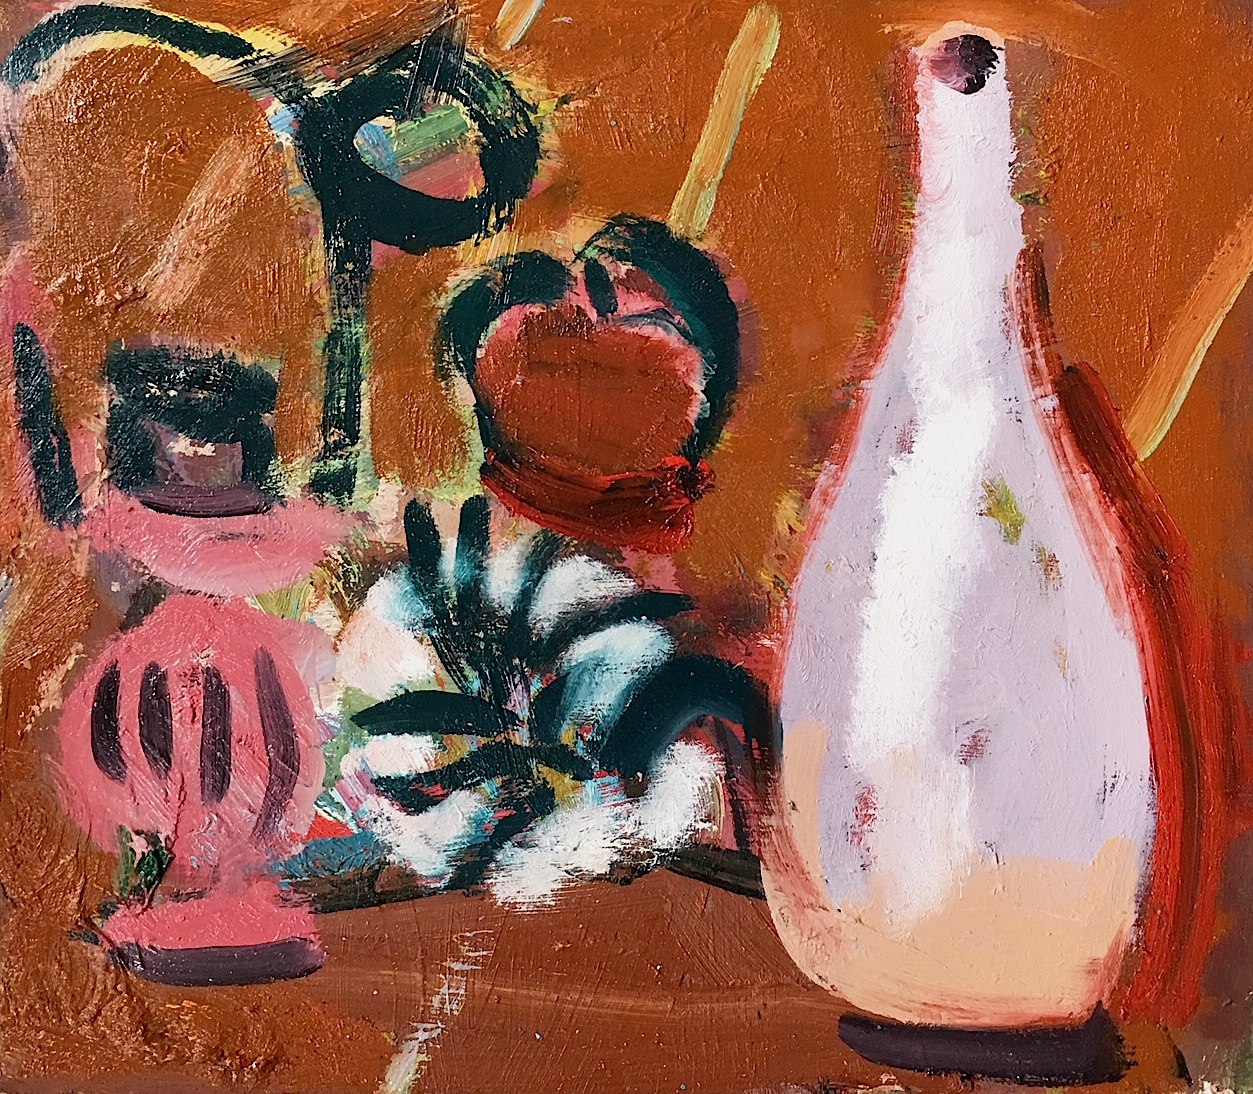 Artist: Luke Hannam  Title: Still Life II  Size: 30 x 33 cm  Medium: Oil on board  Price: £825